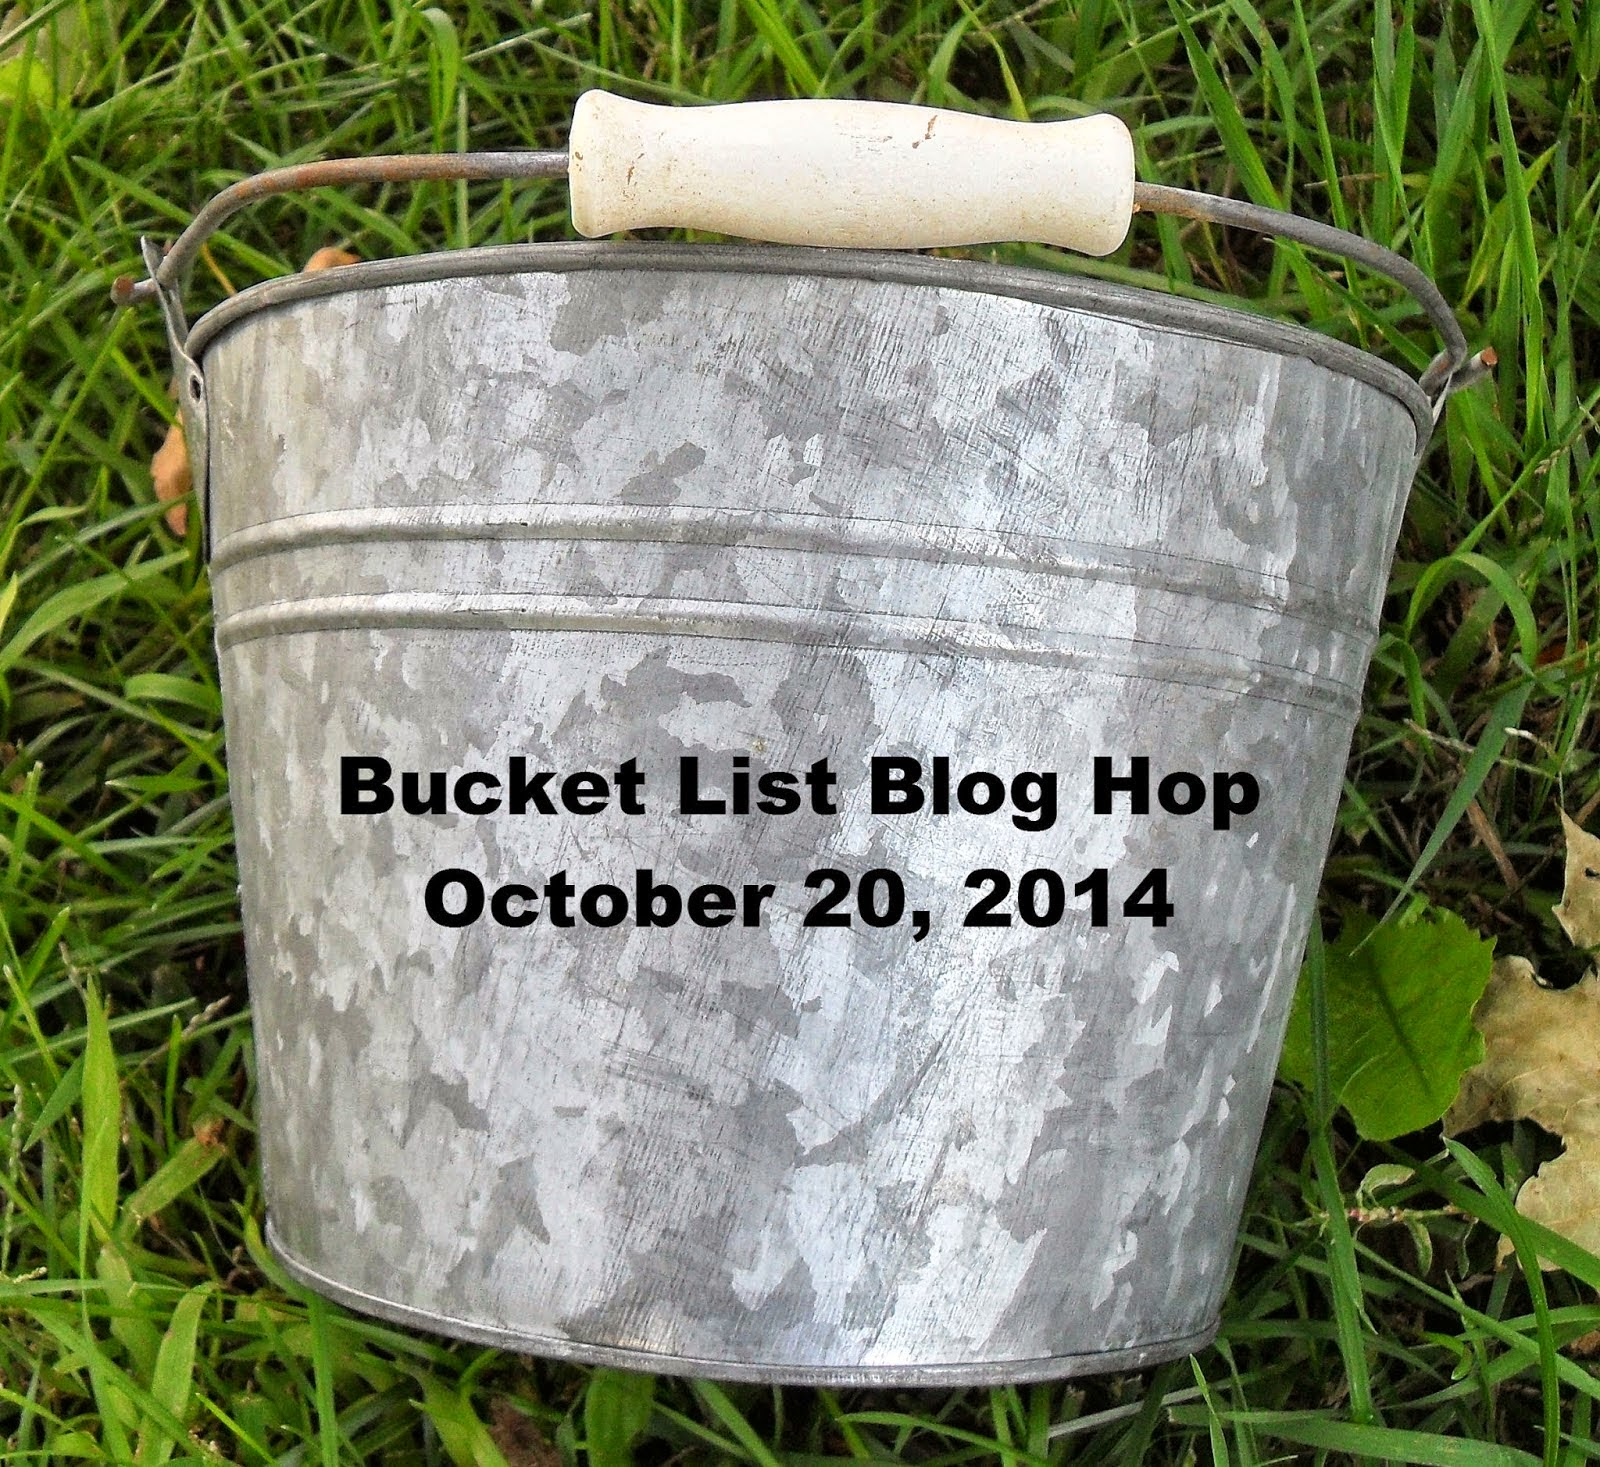 Bucket List Blog Hop!